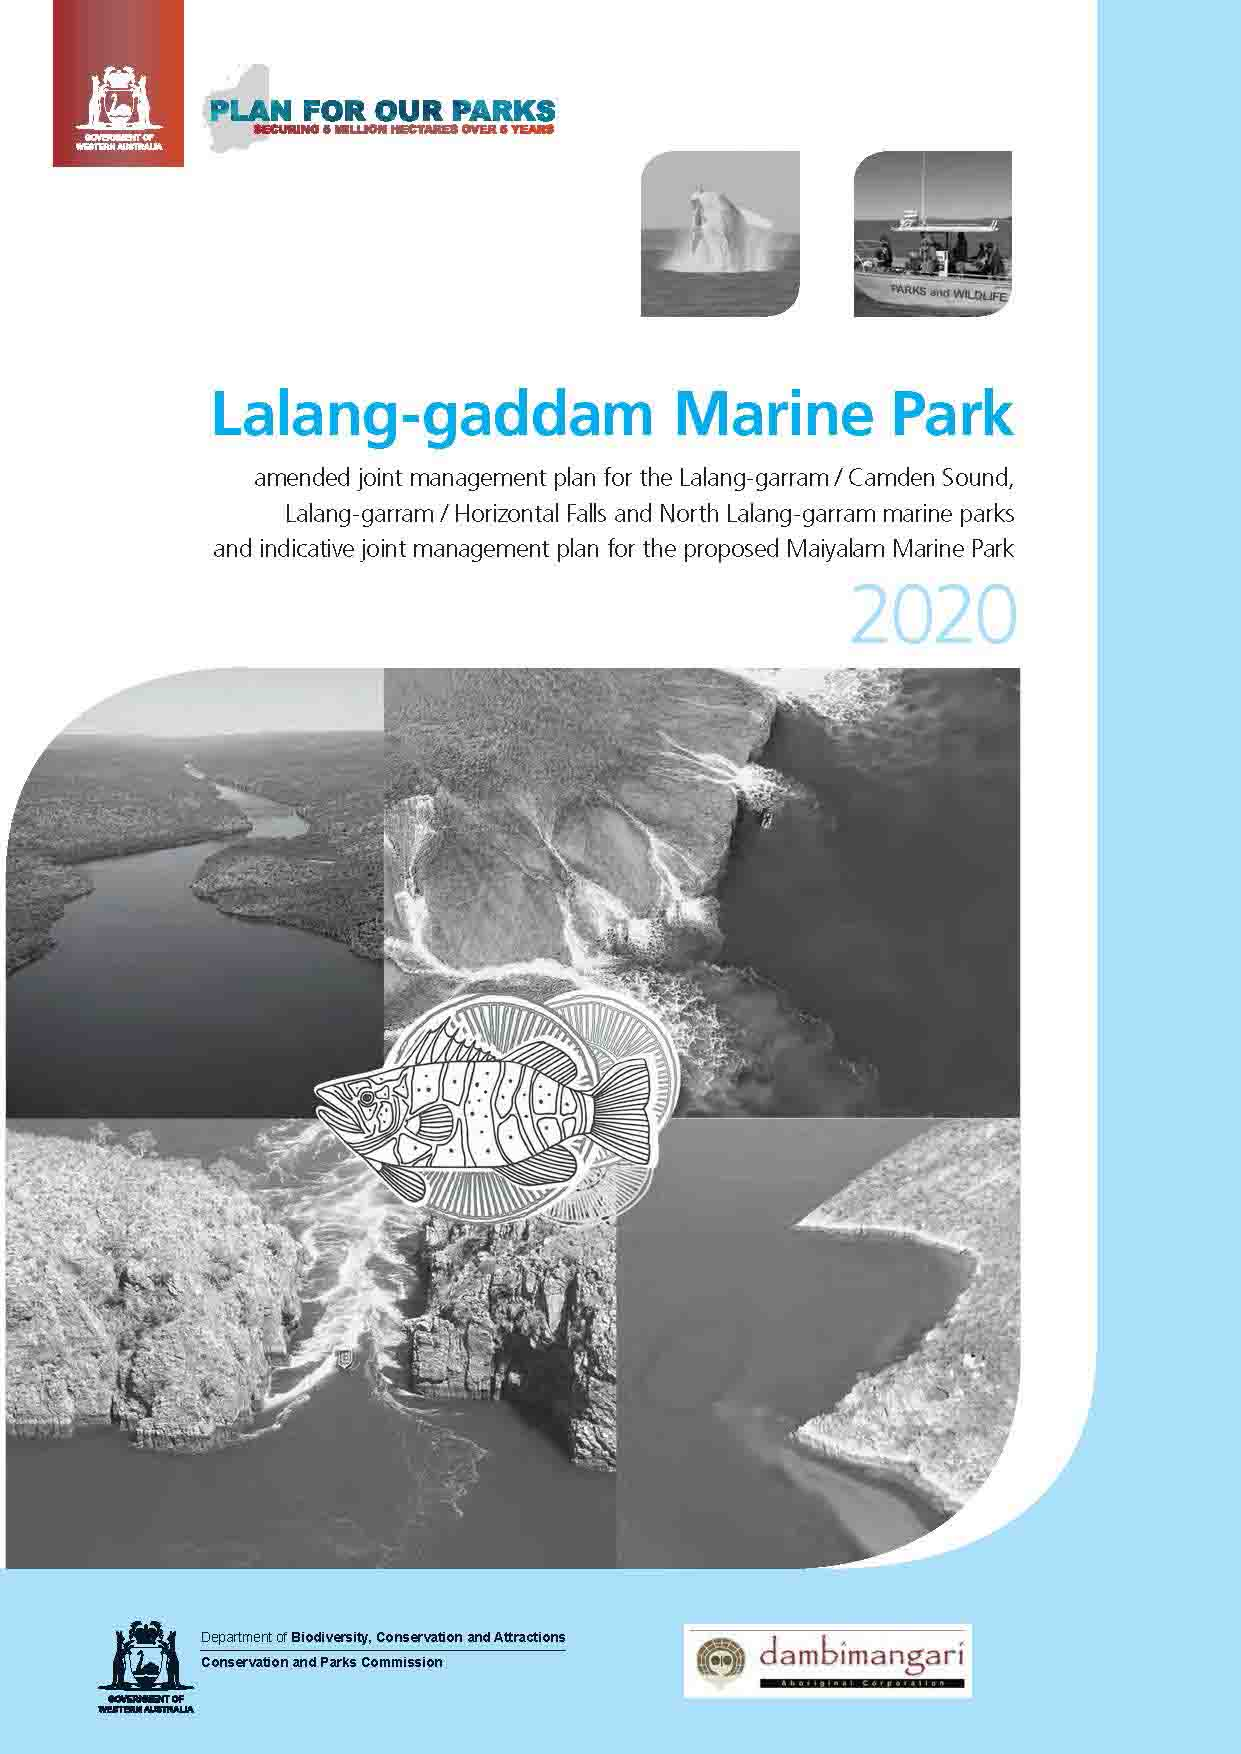 Lalang-gaddam marine park amended and indicative joint management plan